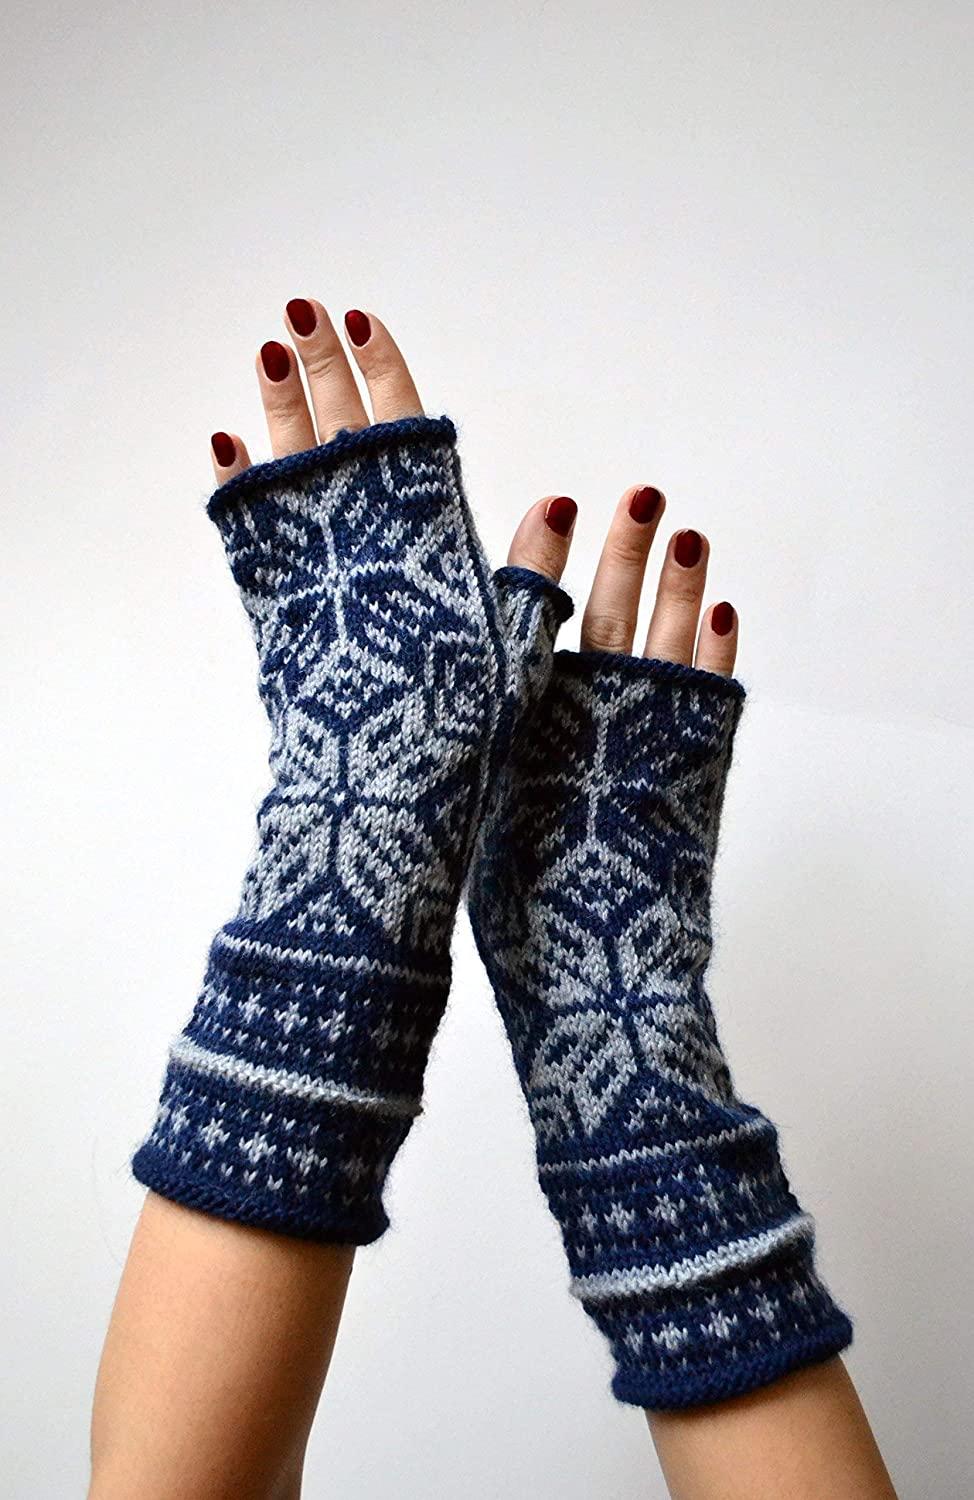 Star pattern Blue and Grey fingerless gloves nO 16.